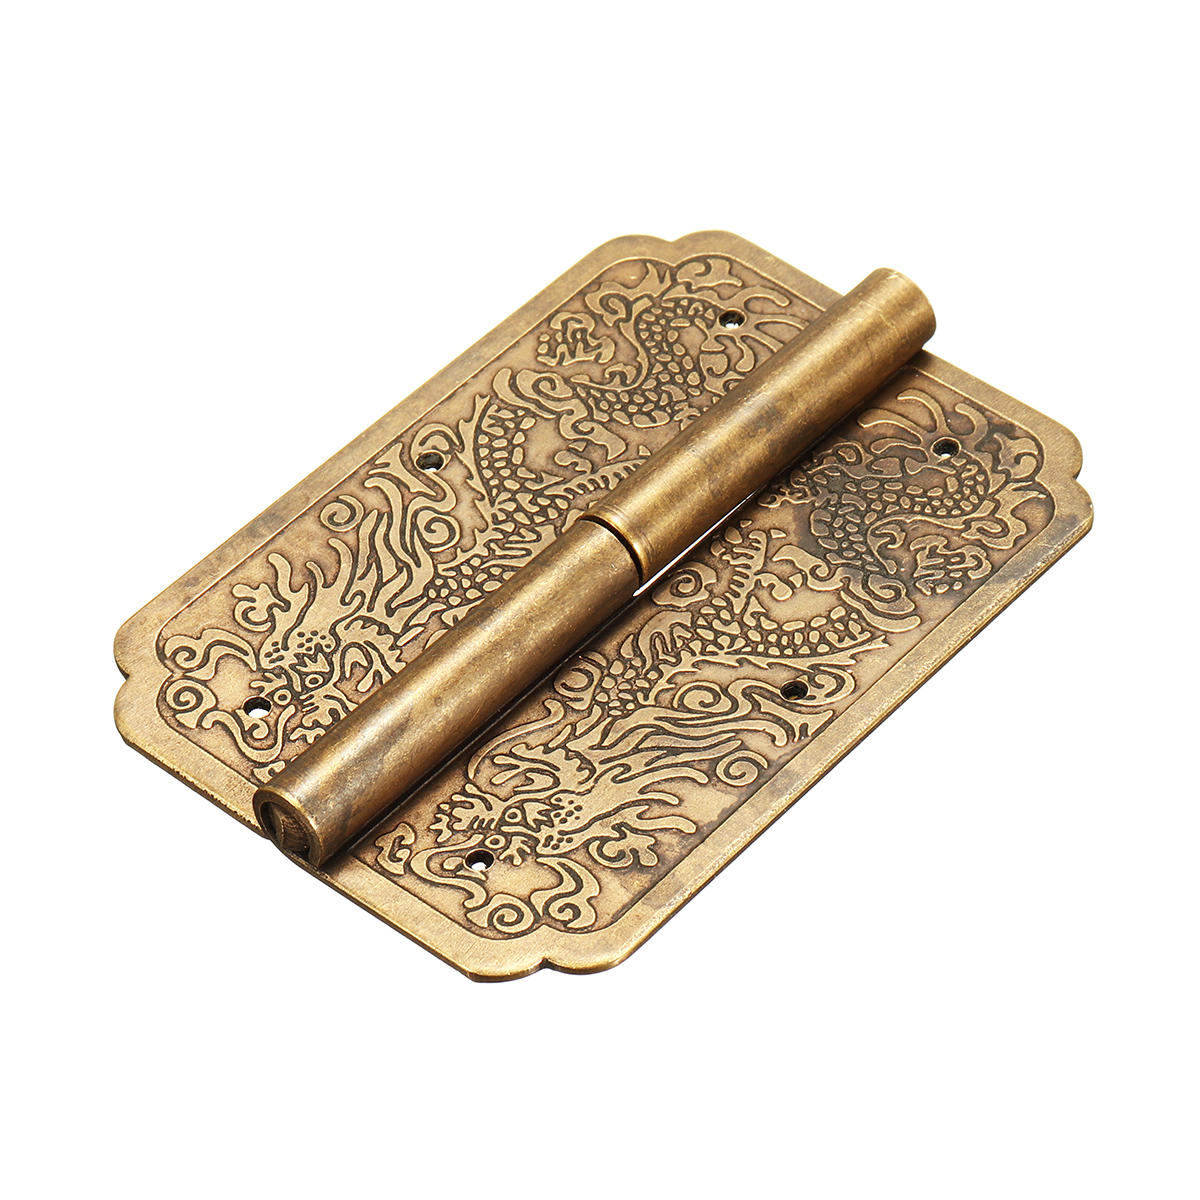 Dragon Lamps For Sale Door Hinge Chinese Furniture Brass Hardware Trunk Cabinet Door Hinges Copper Dragon 3 15